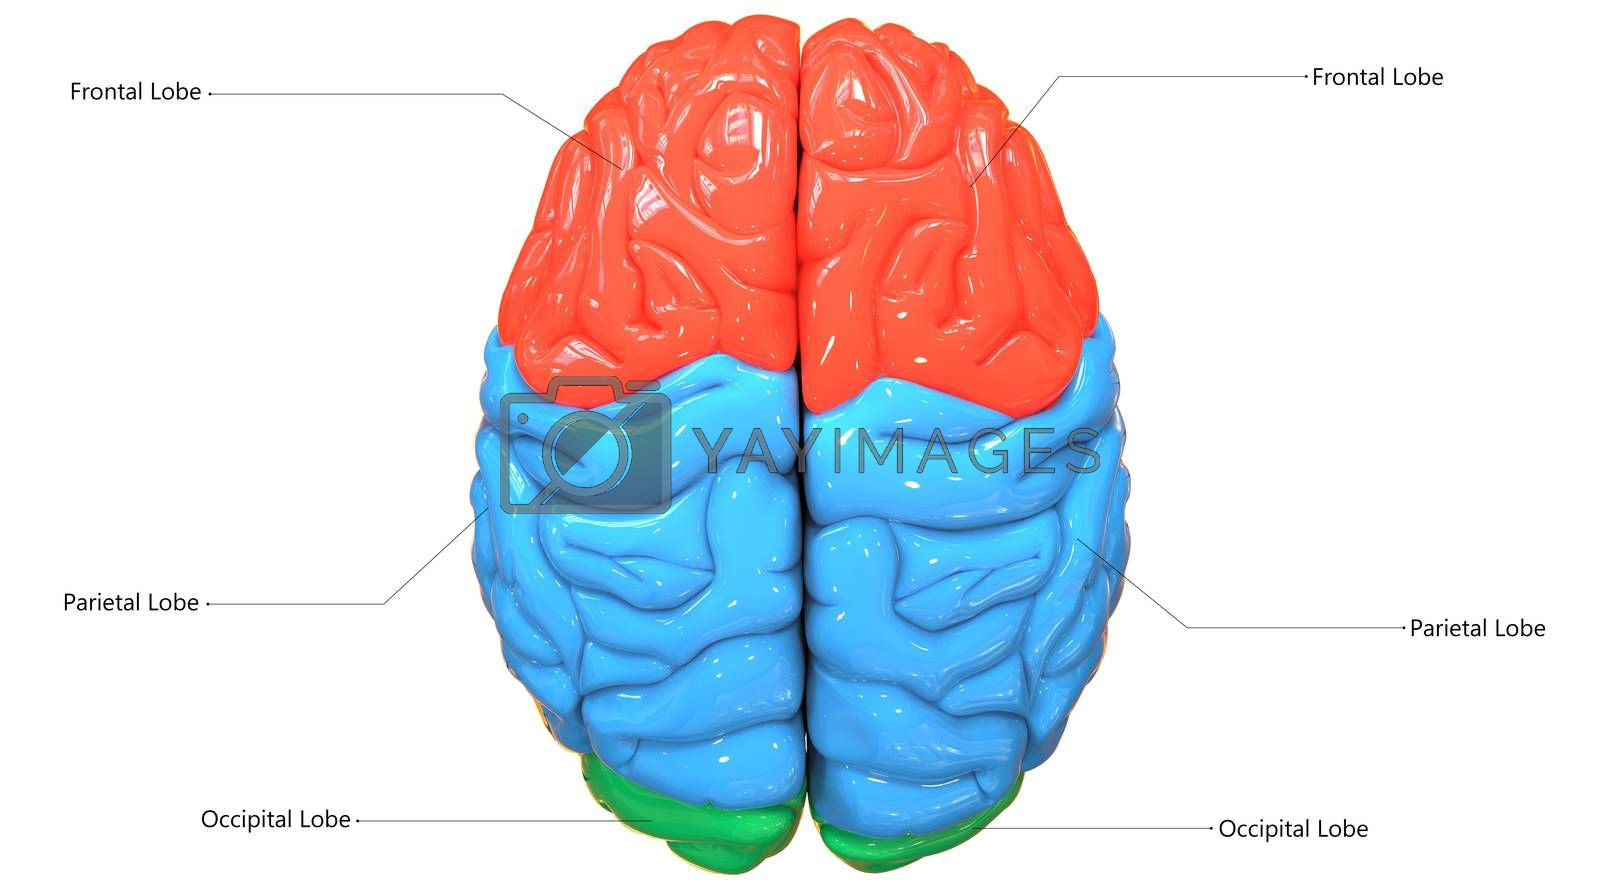 3D Illustration Concept of Central Organ of Human Nervous System Brain Lobes Described with Labels Anatomy Superior View